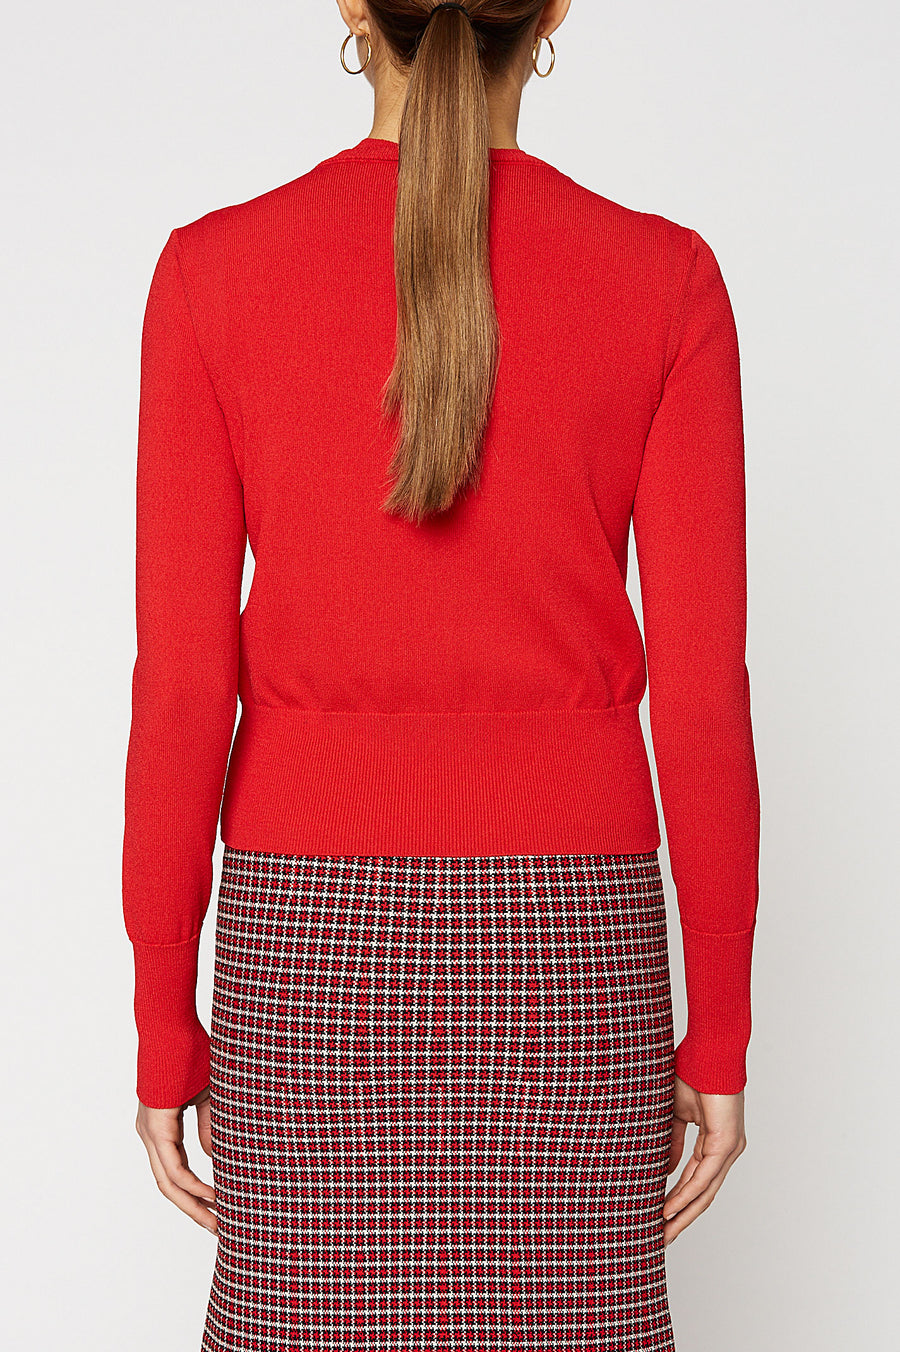 CREPE KNIT CARDIGAN, RED color